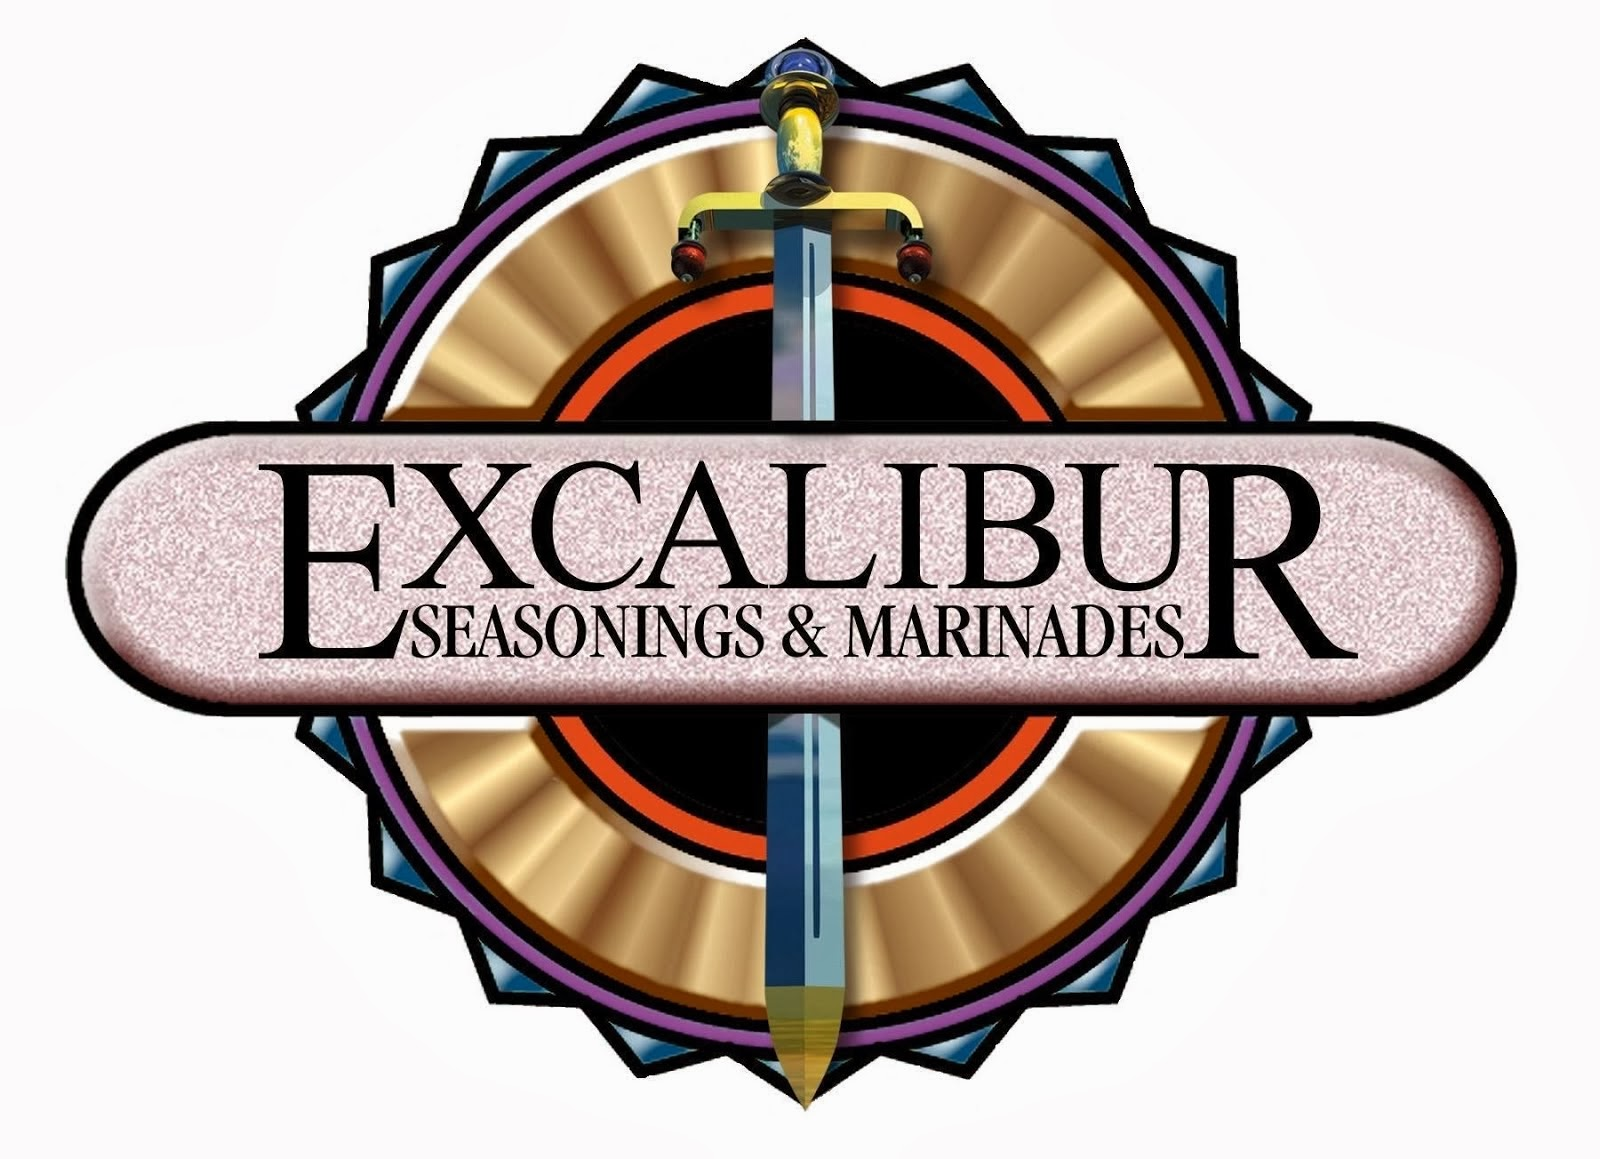 Excalibur Seasoning - Festival Supporter